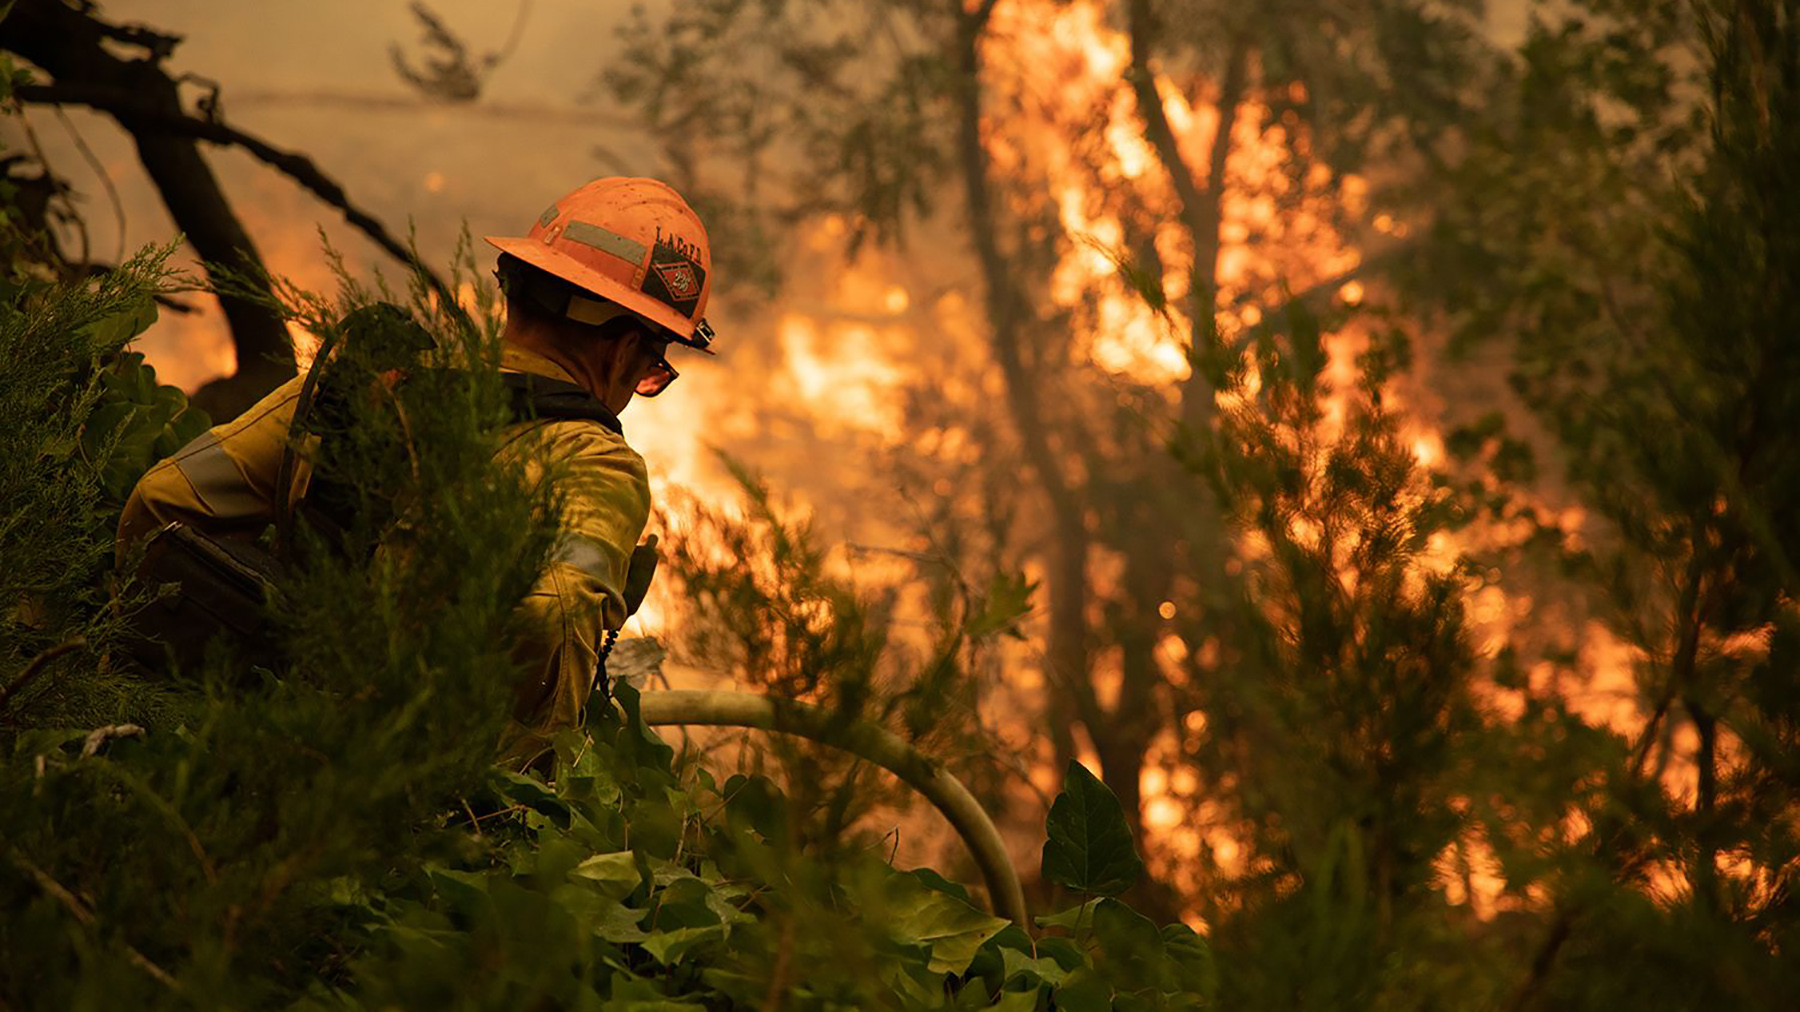 A firefighter works to quell the flames of the El Dorado Fire burning in California's San Bernardino mountains on Sept. 10, 2020. Fires are burning across a dozen U.S. states, creating health challenges for residents while the pandemic stretches on. (Photo courtesy of San Bernardino County Fire Department)